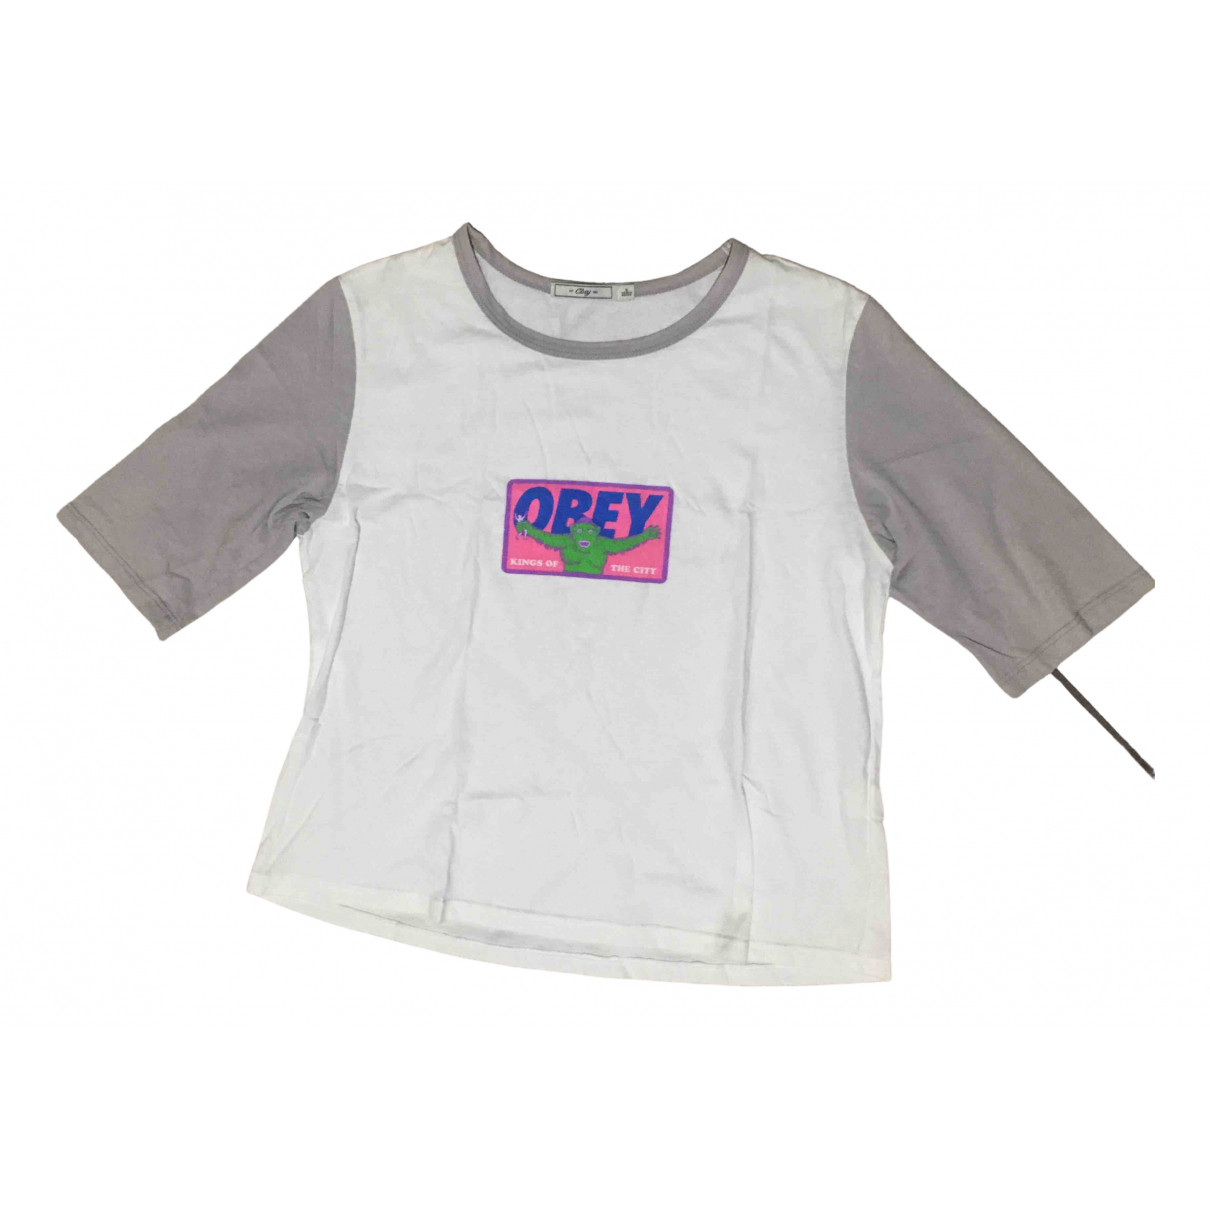 Obey \N White Cotton  top for Women S International